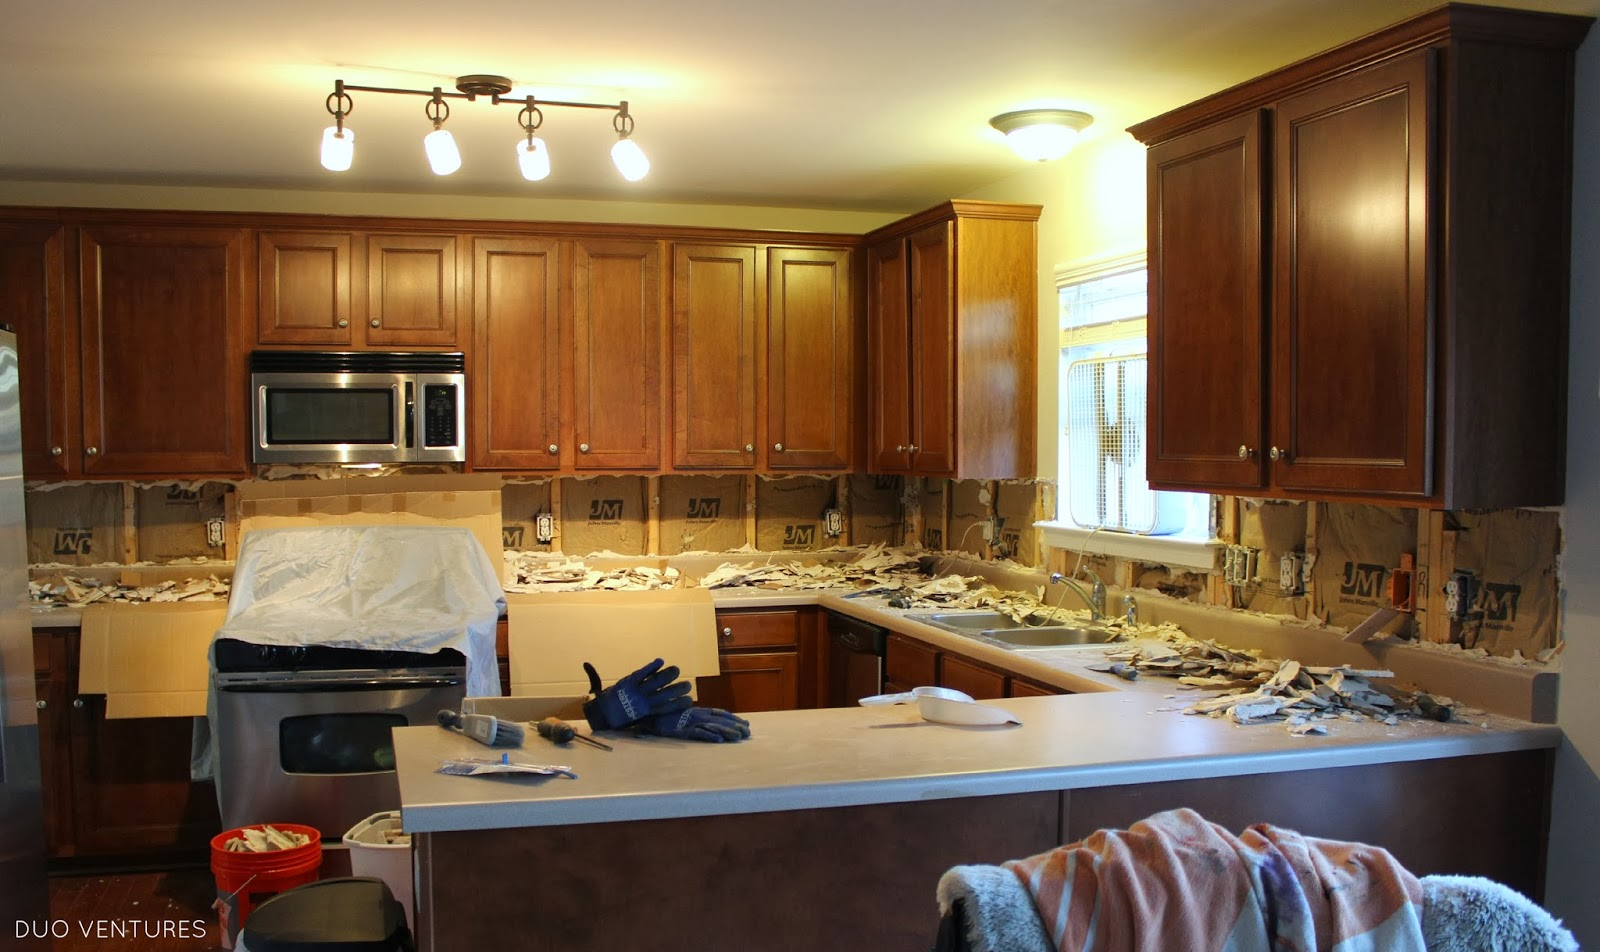 Cost to replace kitchen cabinets kitchen french kitchen - What is the average cost of new kitchen cabinets ...